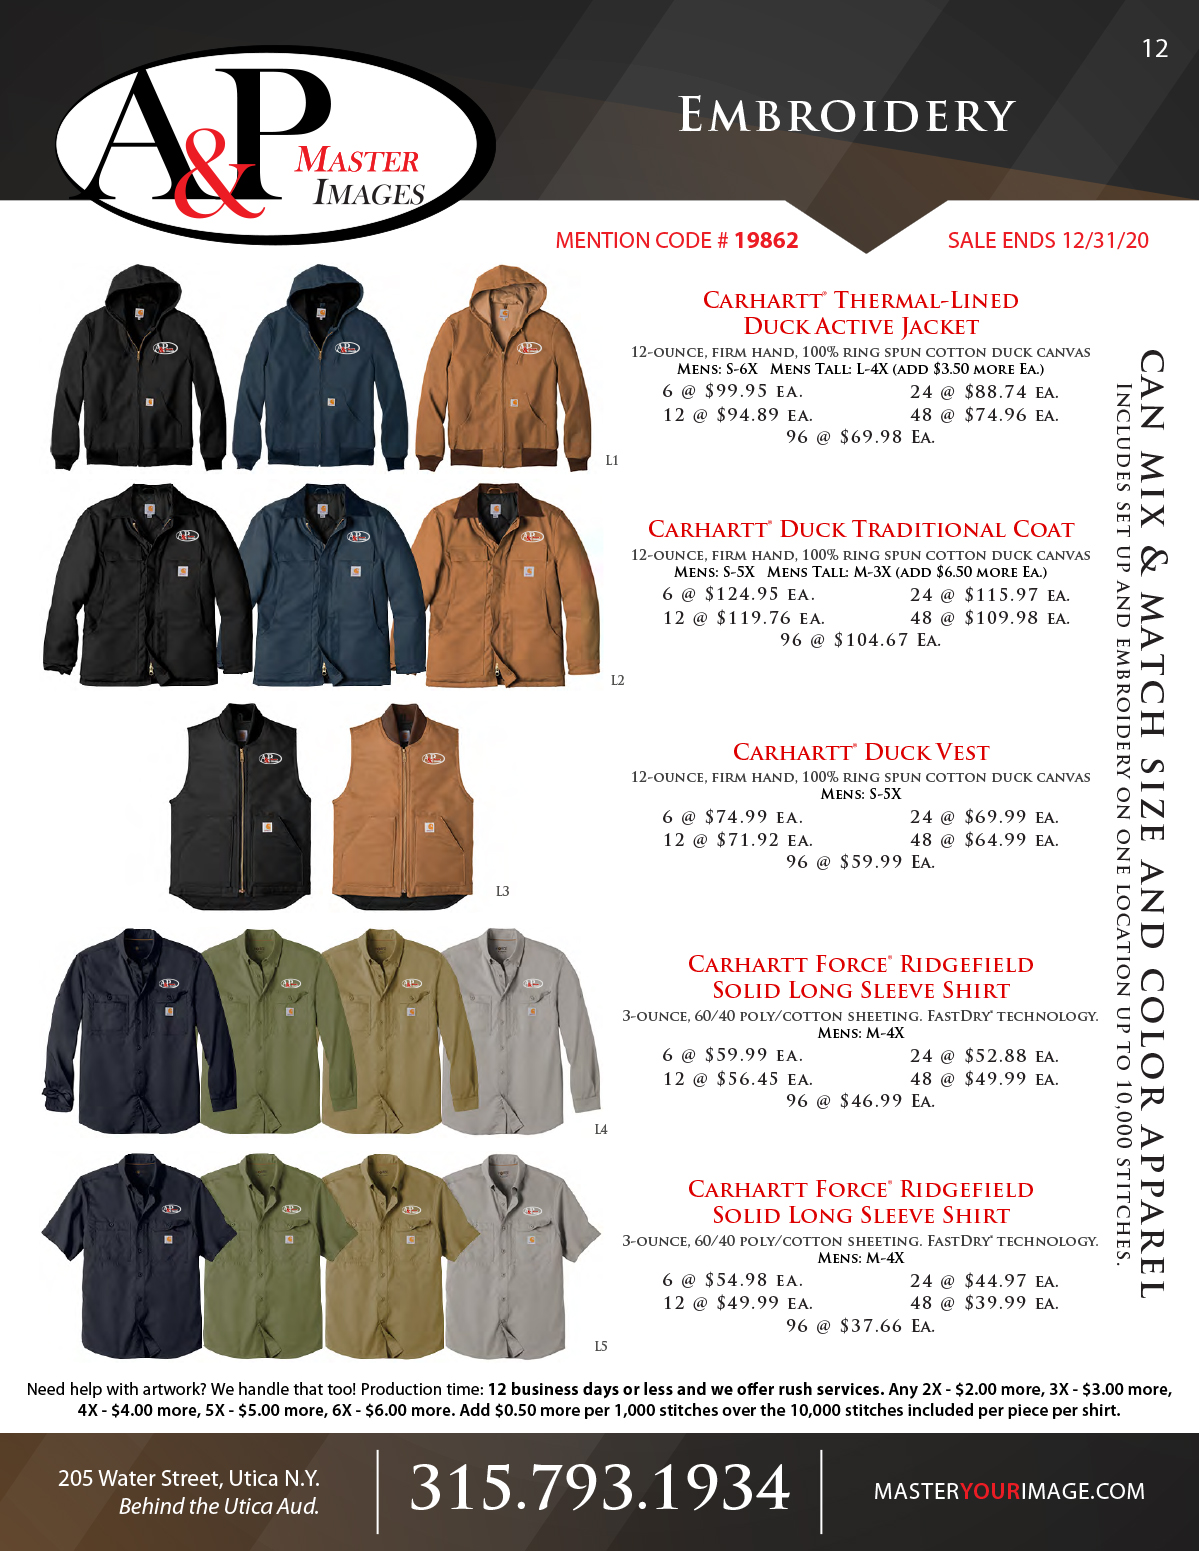 Sales Flyers - Embroidery 01